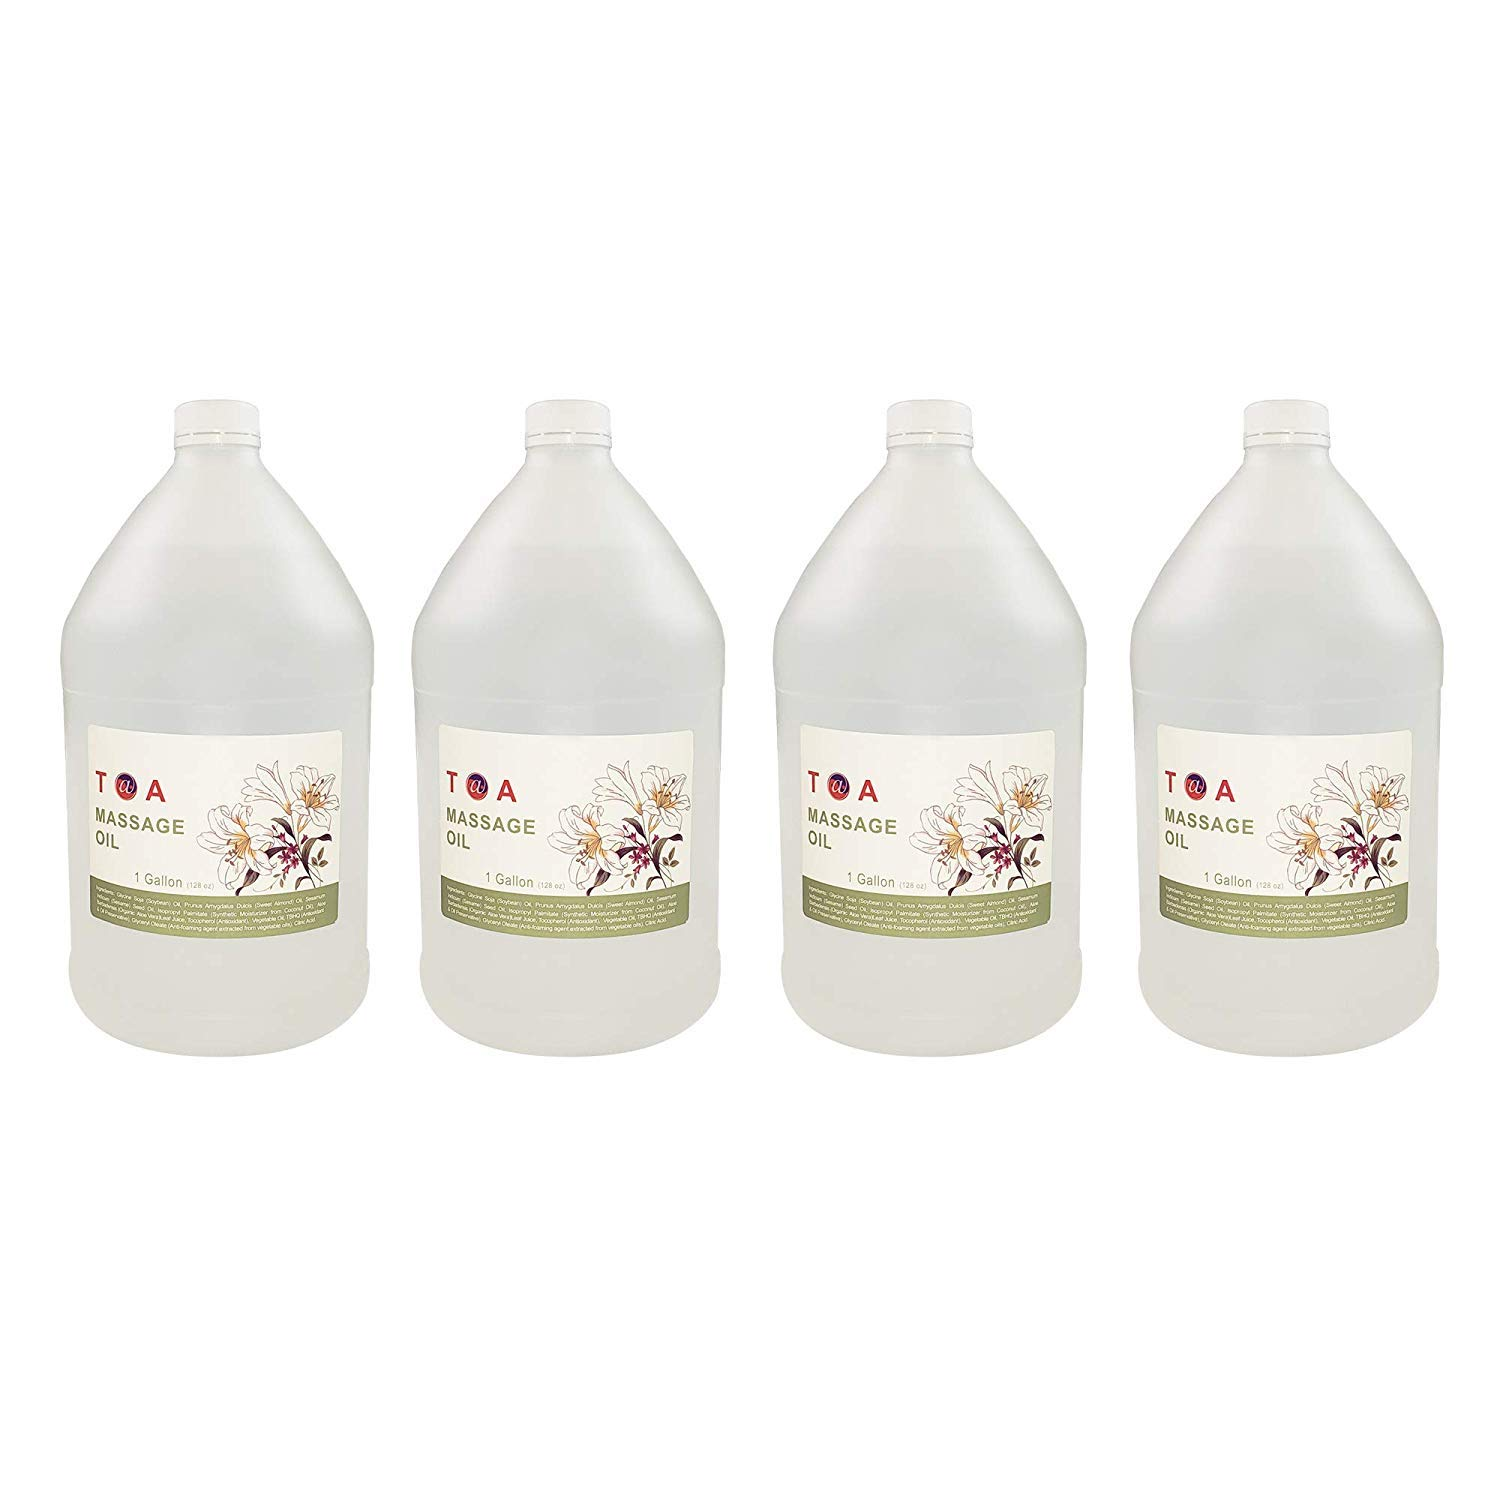 TOA Supply Mineral Oil Body Spa Massage for Therapists Unscented Gallon Bottle (4 Gallons)